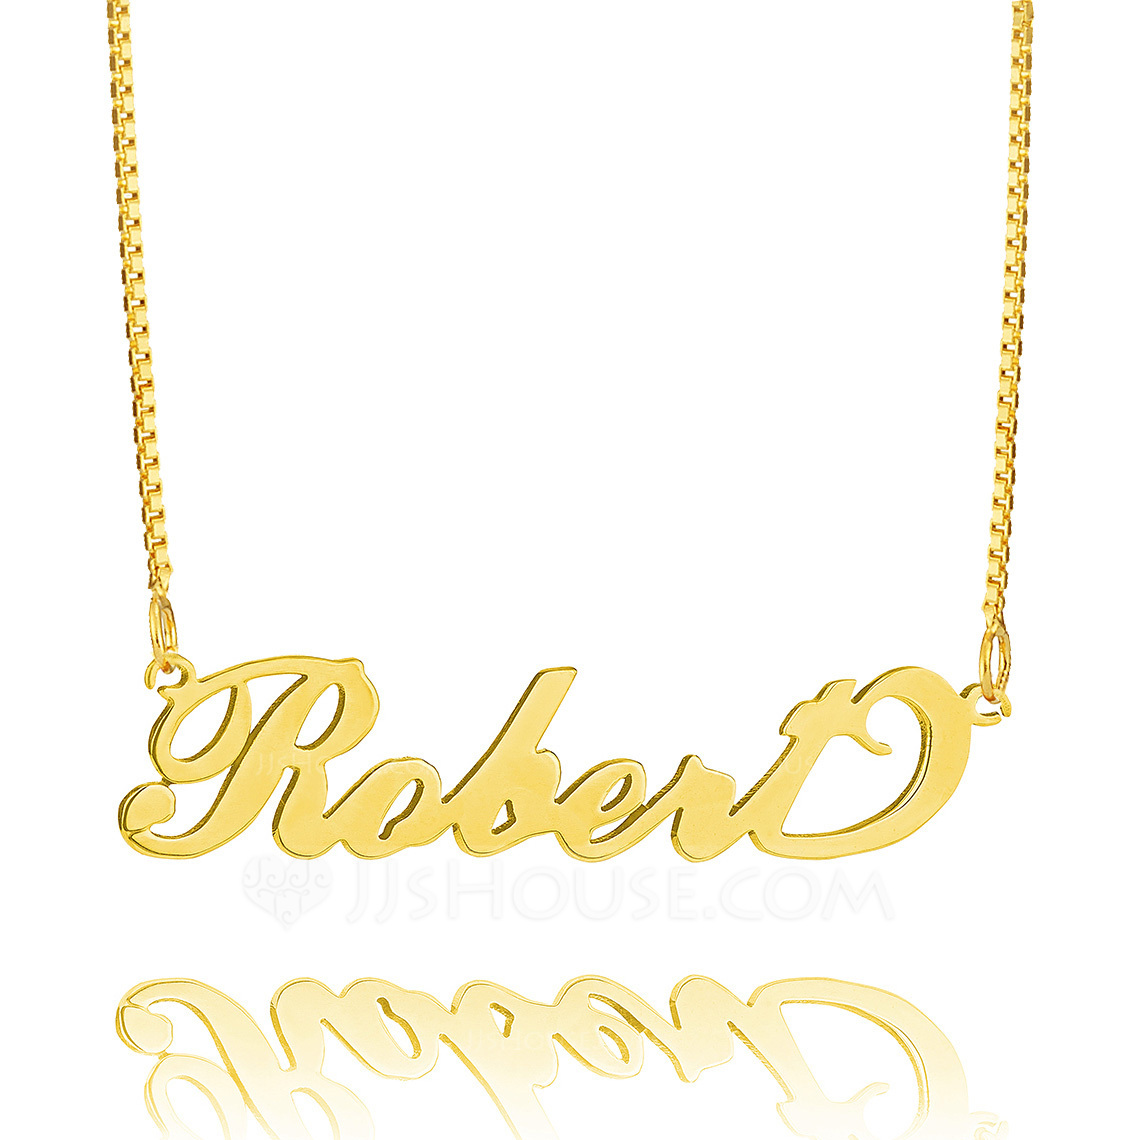 Custom 18k Gold Plated Silver 'Carrie' Style Script Name Necklace - Birthday Gifts Mother's Day Gifts